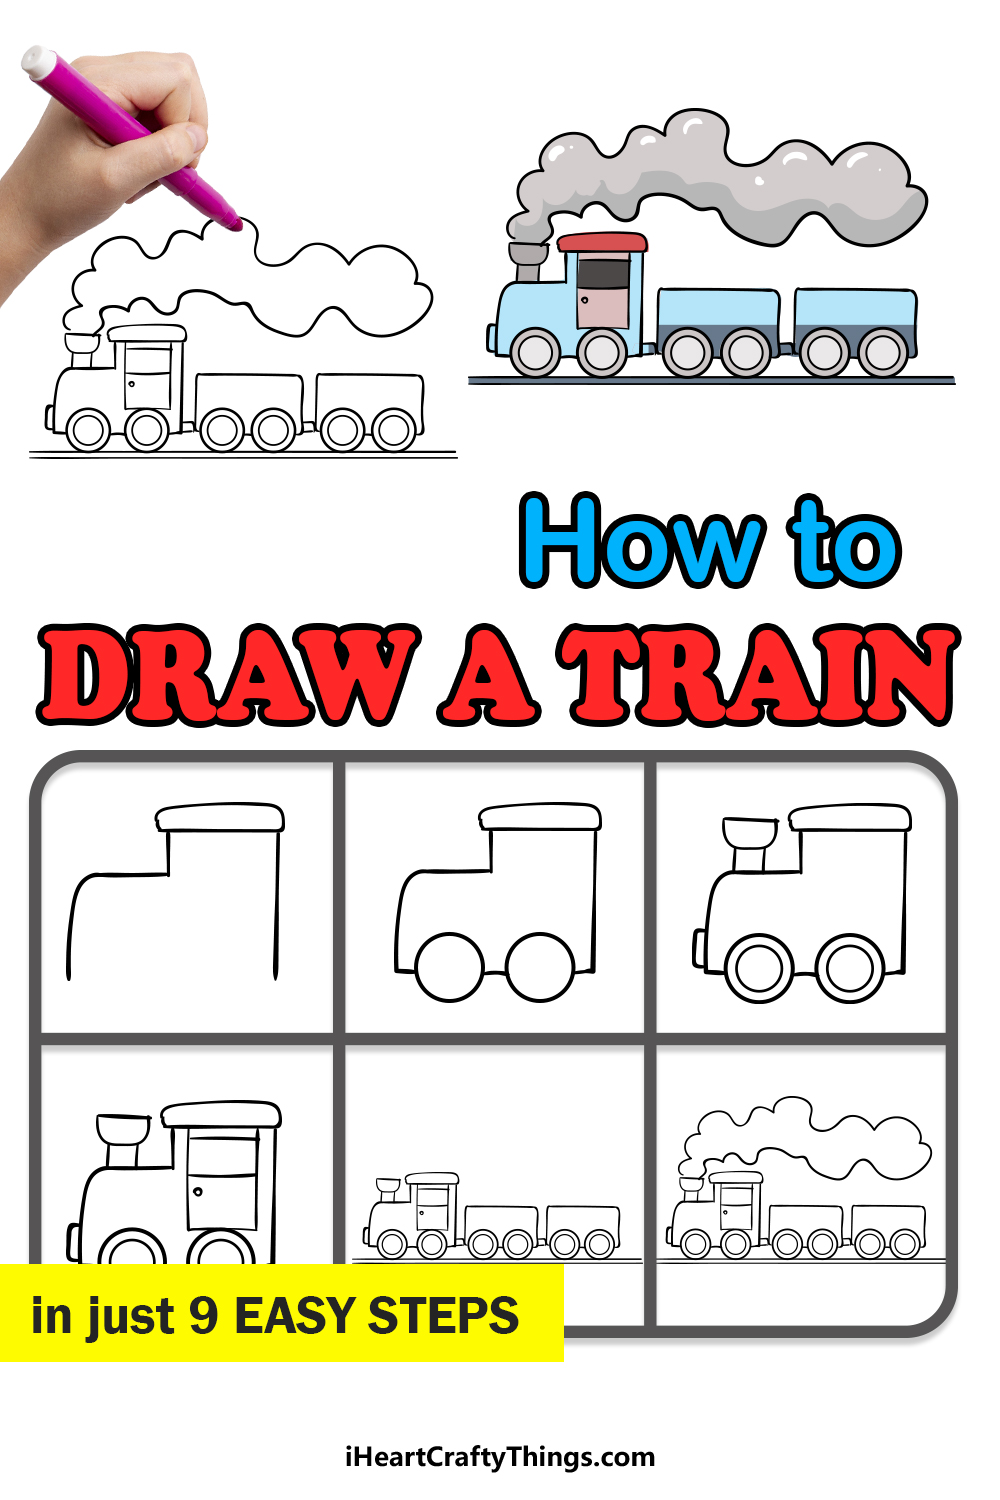 how to draw a train in 9 easy steps